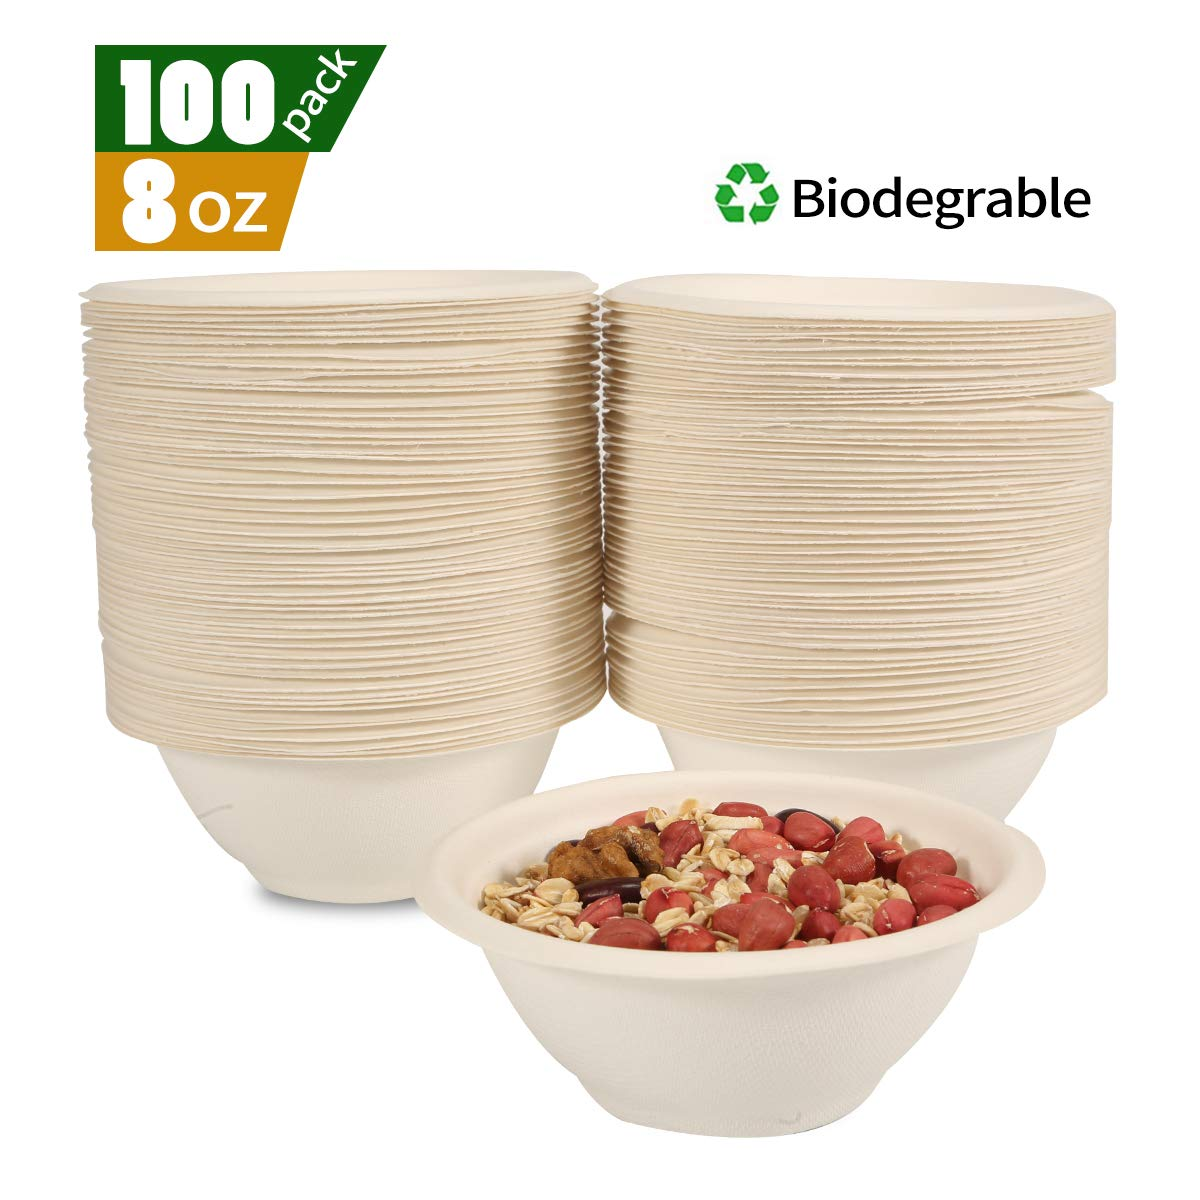 Biodegradable Compostable Bagasse Bowls - Eco Friendly Sugarcane Dinnerware - Recyclable and Leakproof,8 Oz,100 Pack